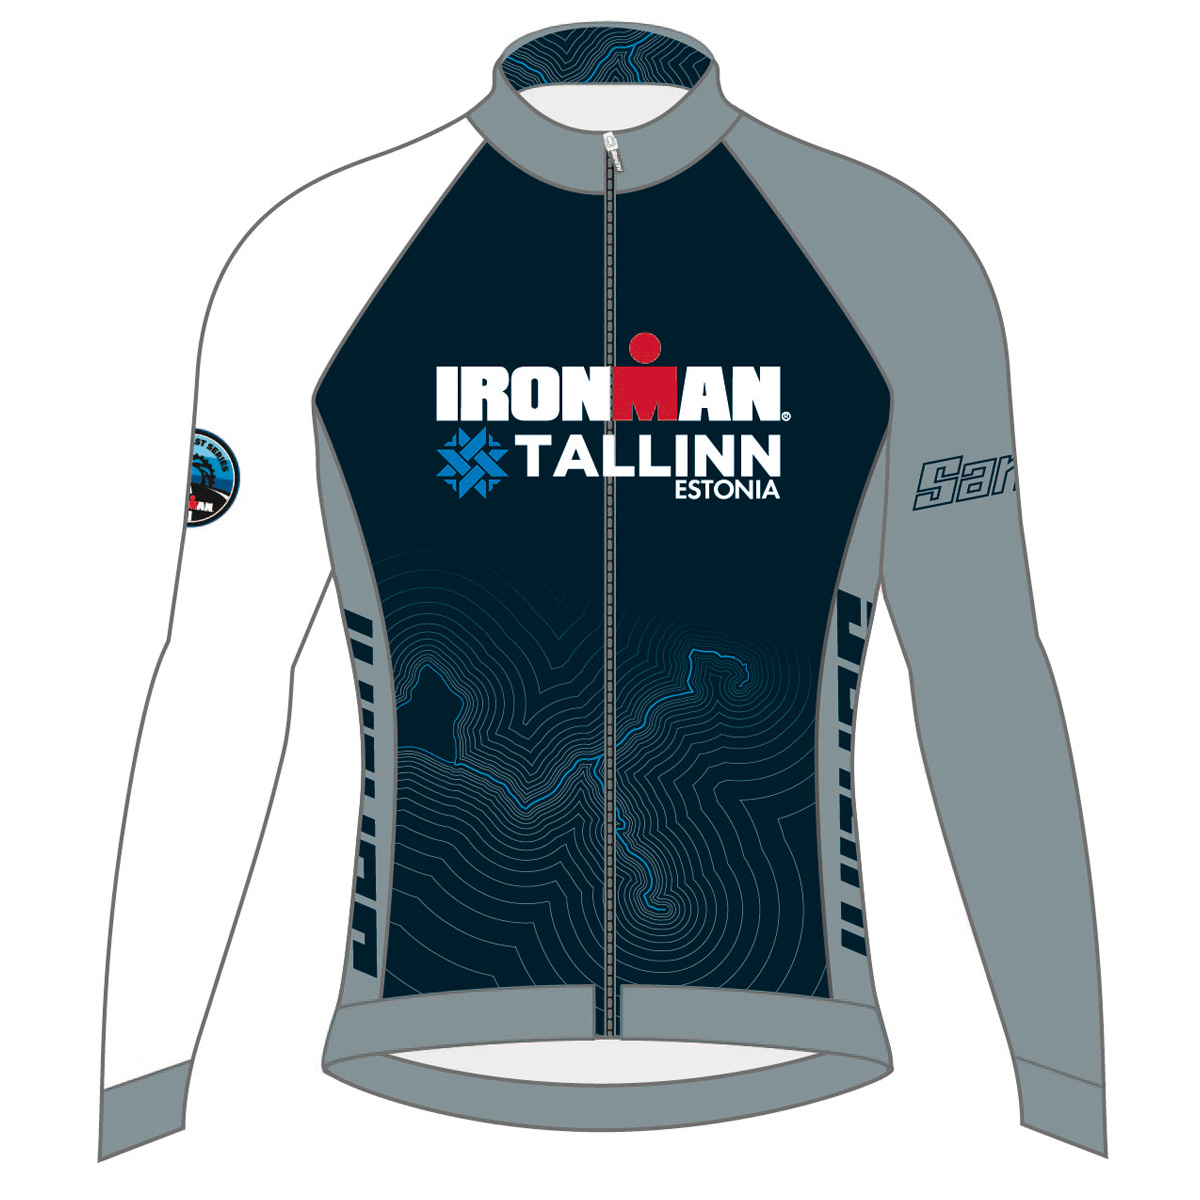 IRONMAN TALLINN 2019 MEN'S FINISHER COURSE CYCLE JERSEY